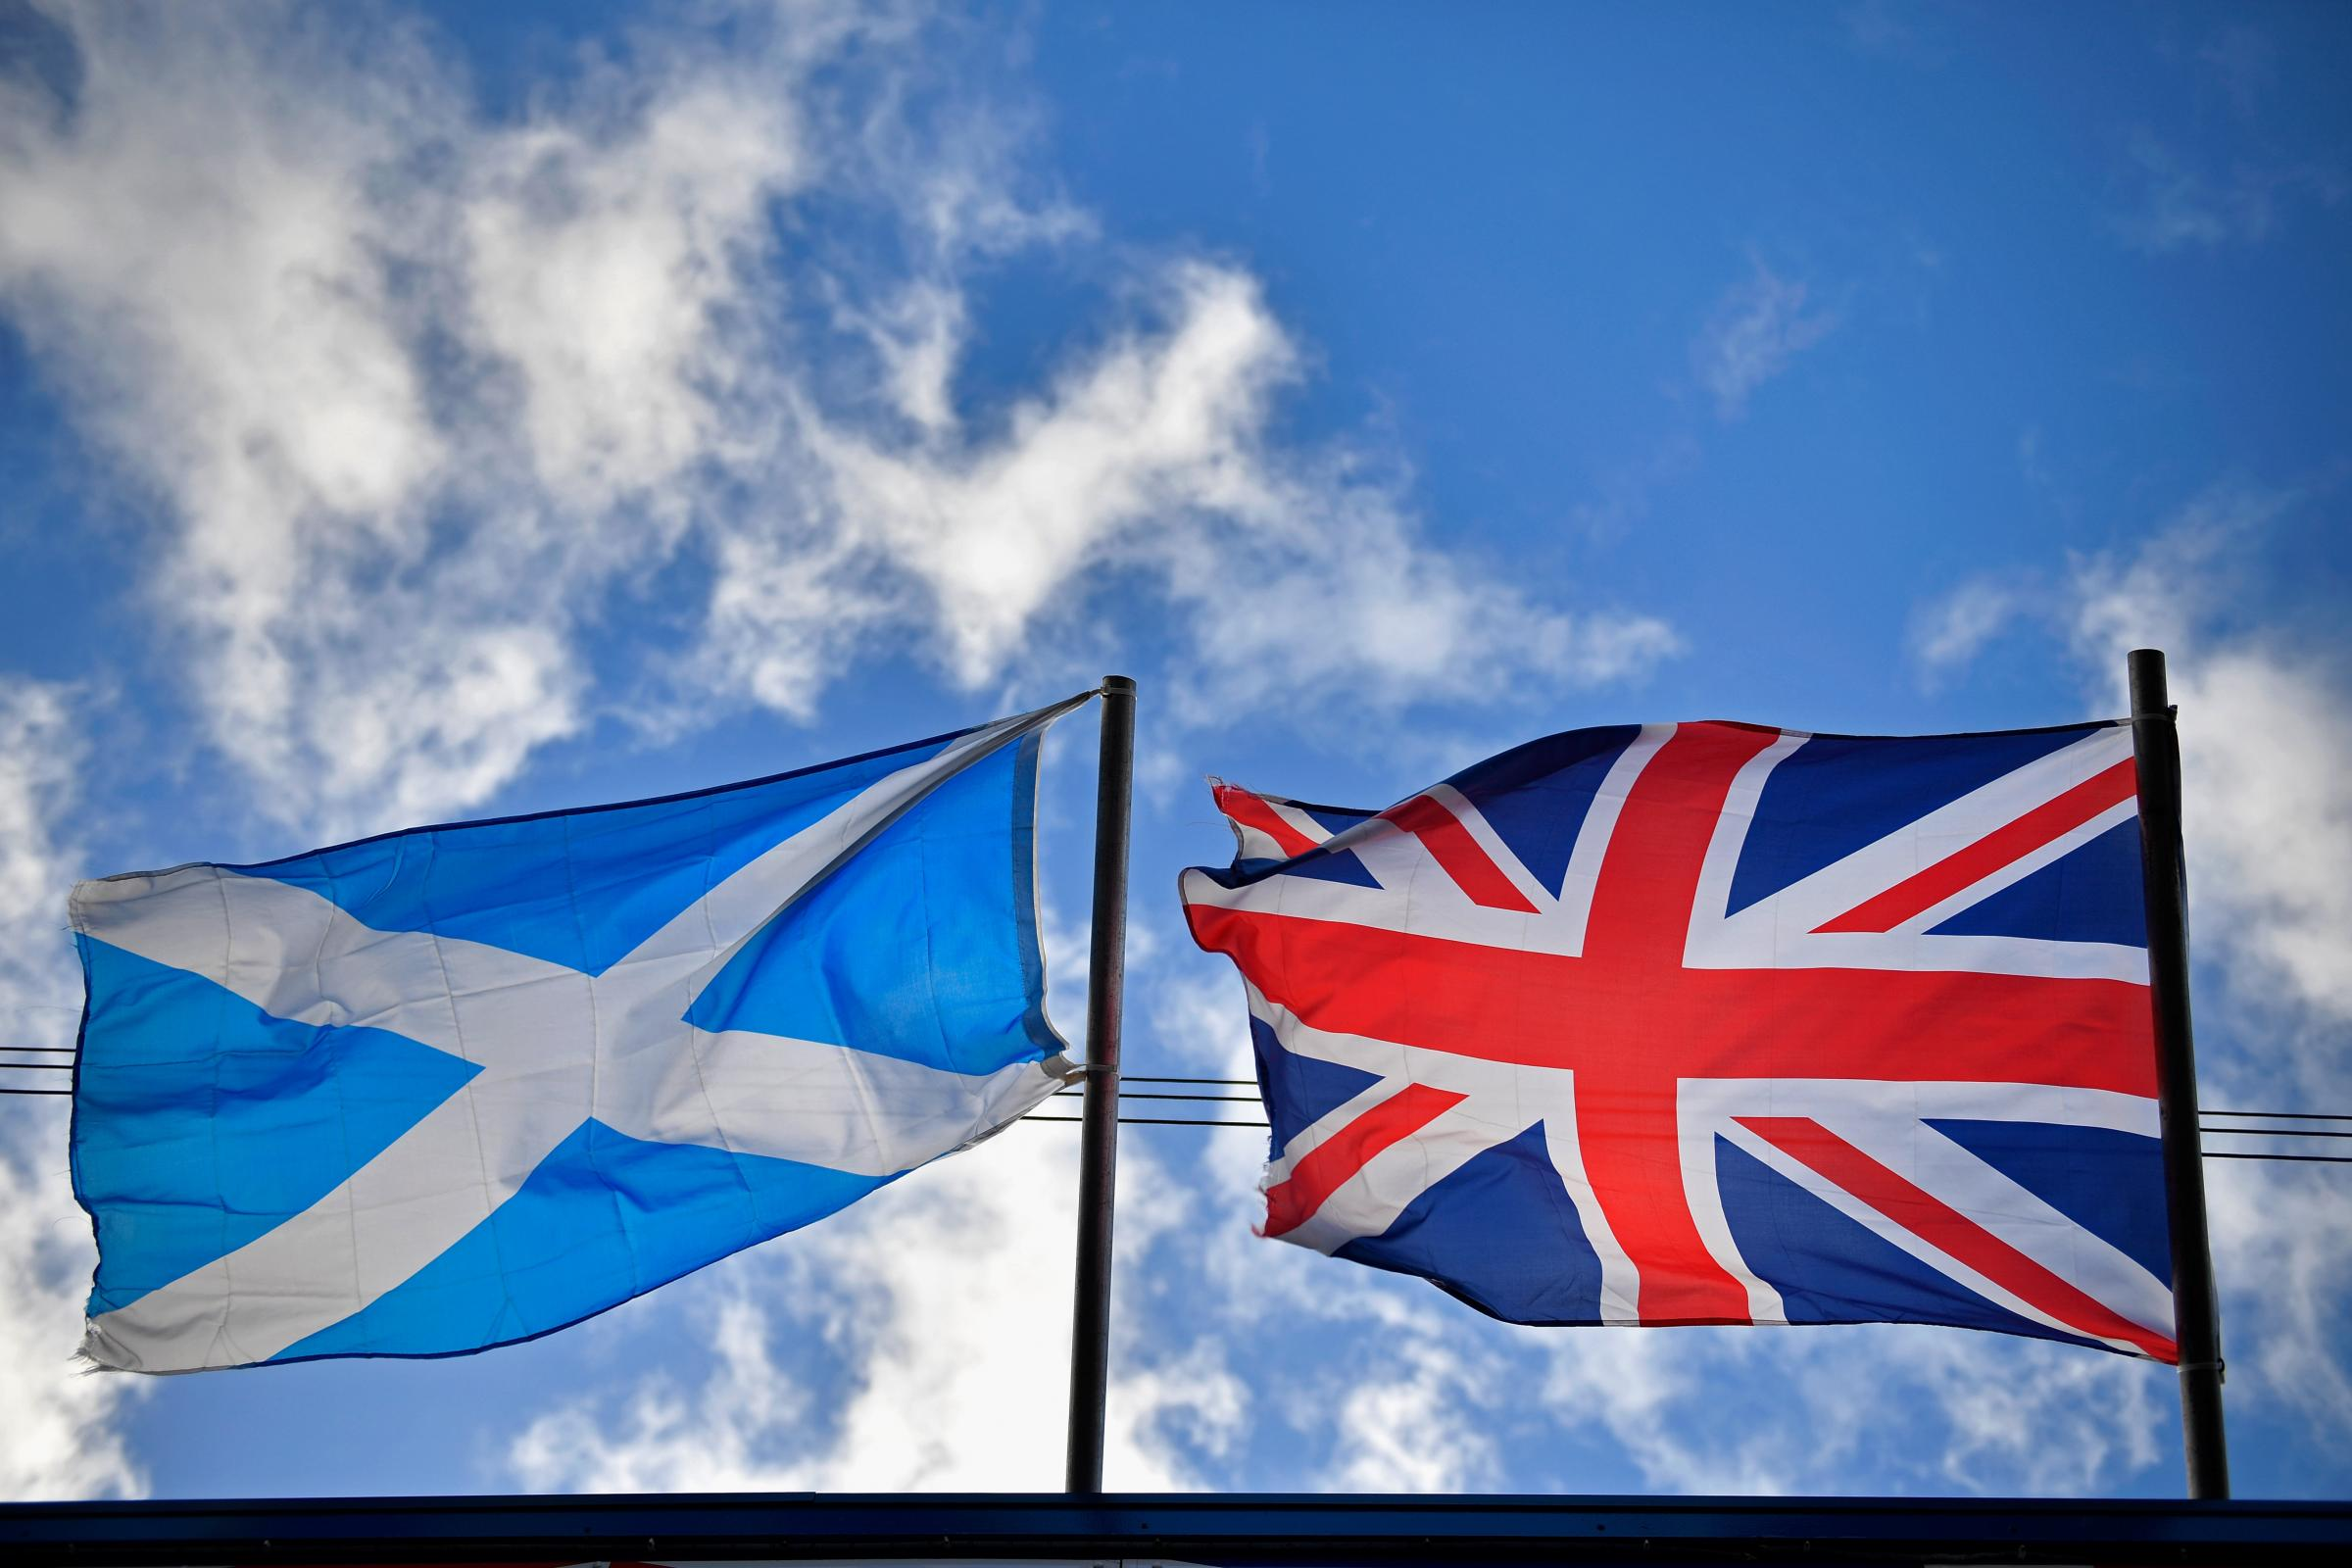 Letters: The 2014 promises of Scotland being an equal partner in the UK now ring hollow